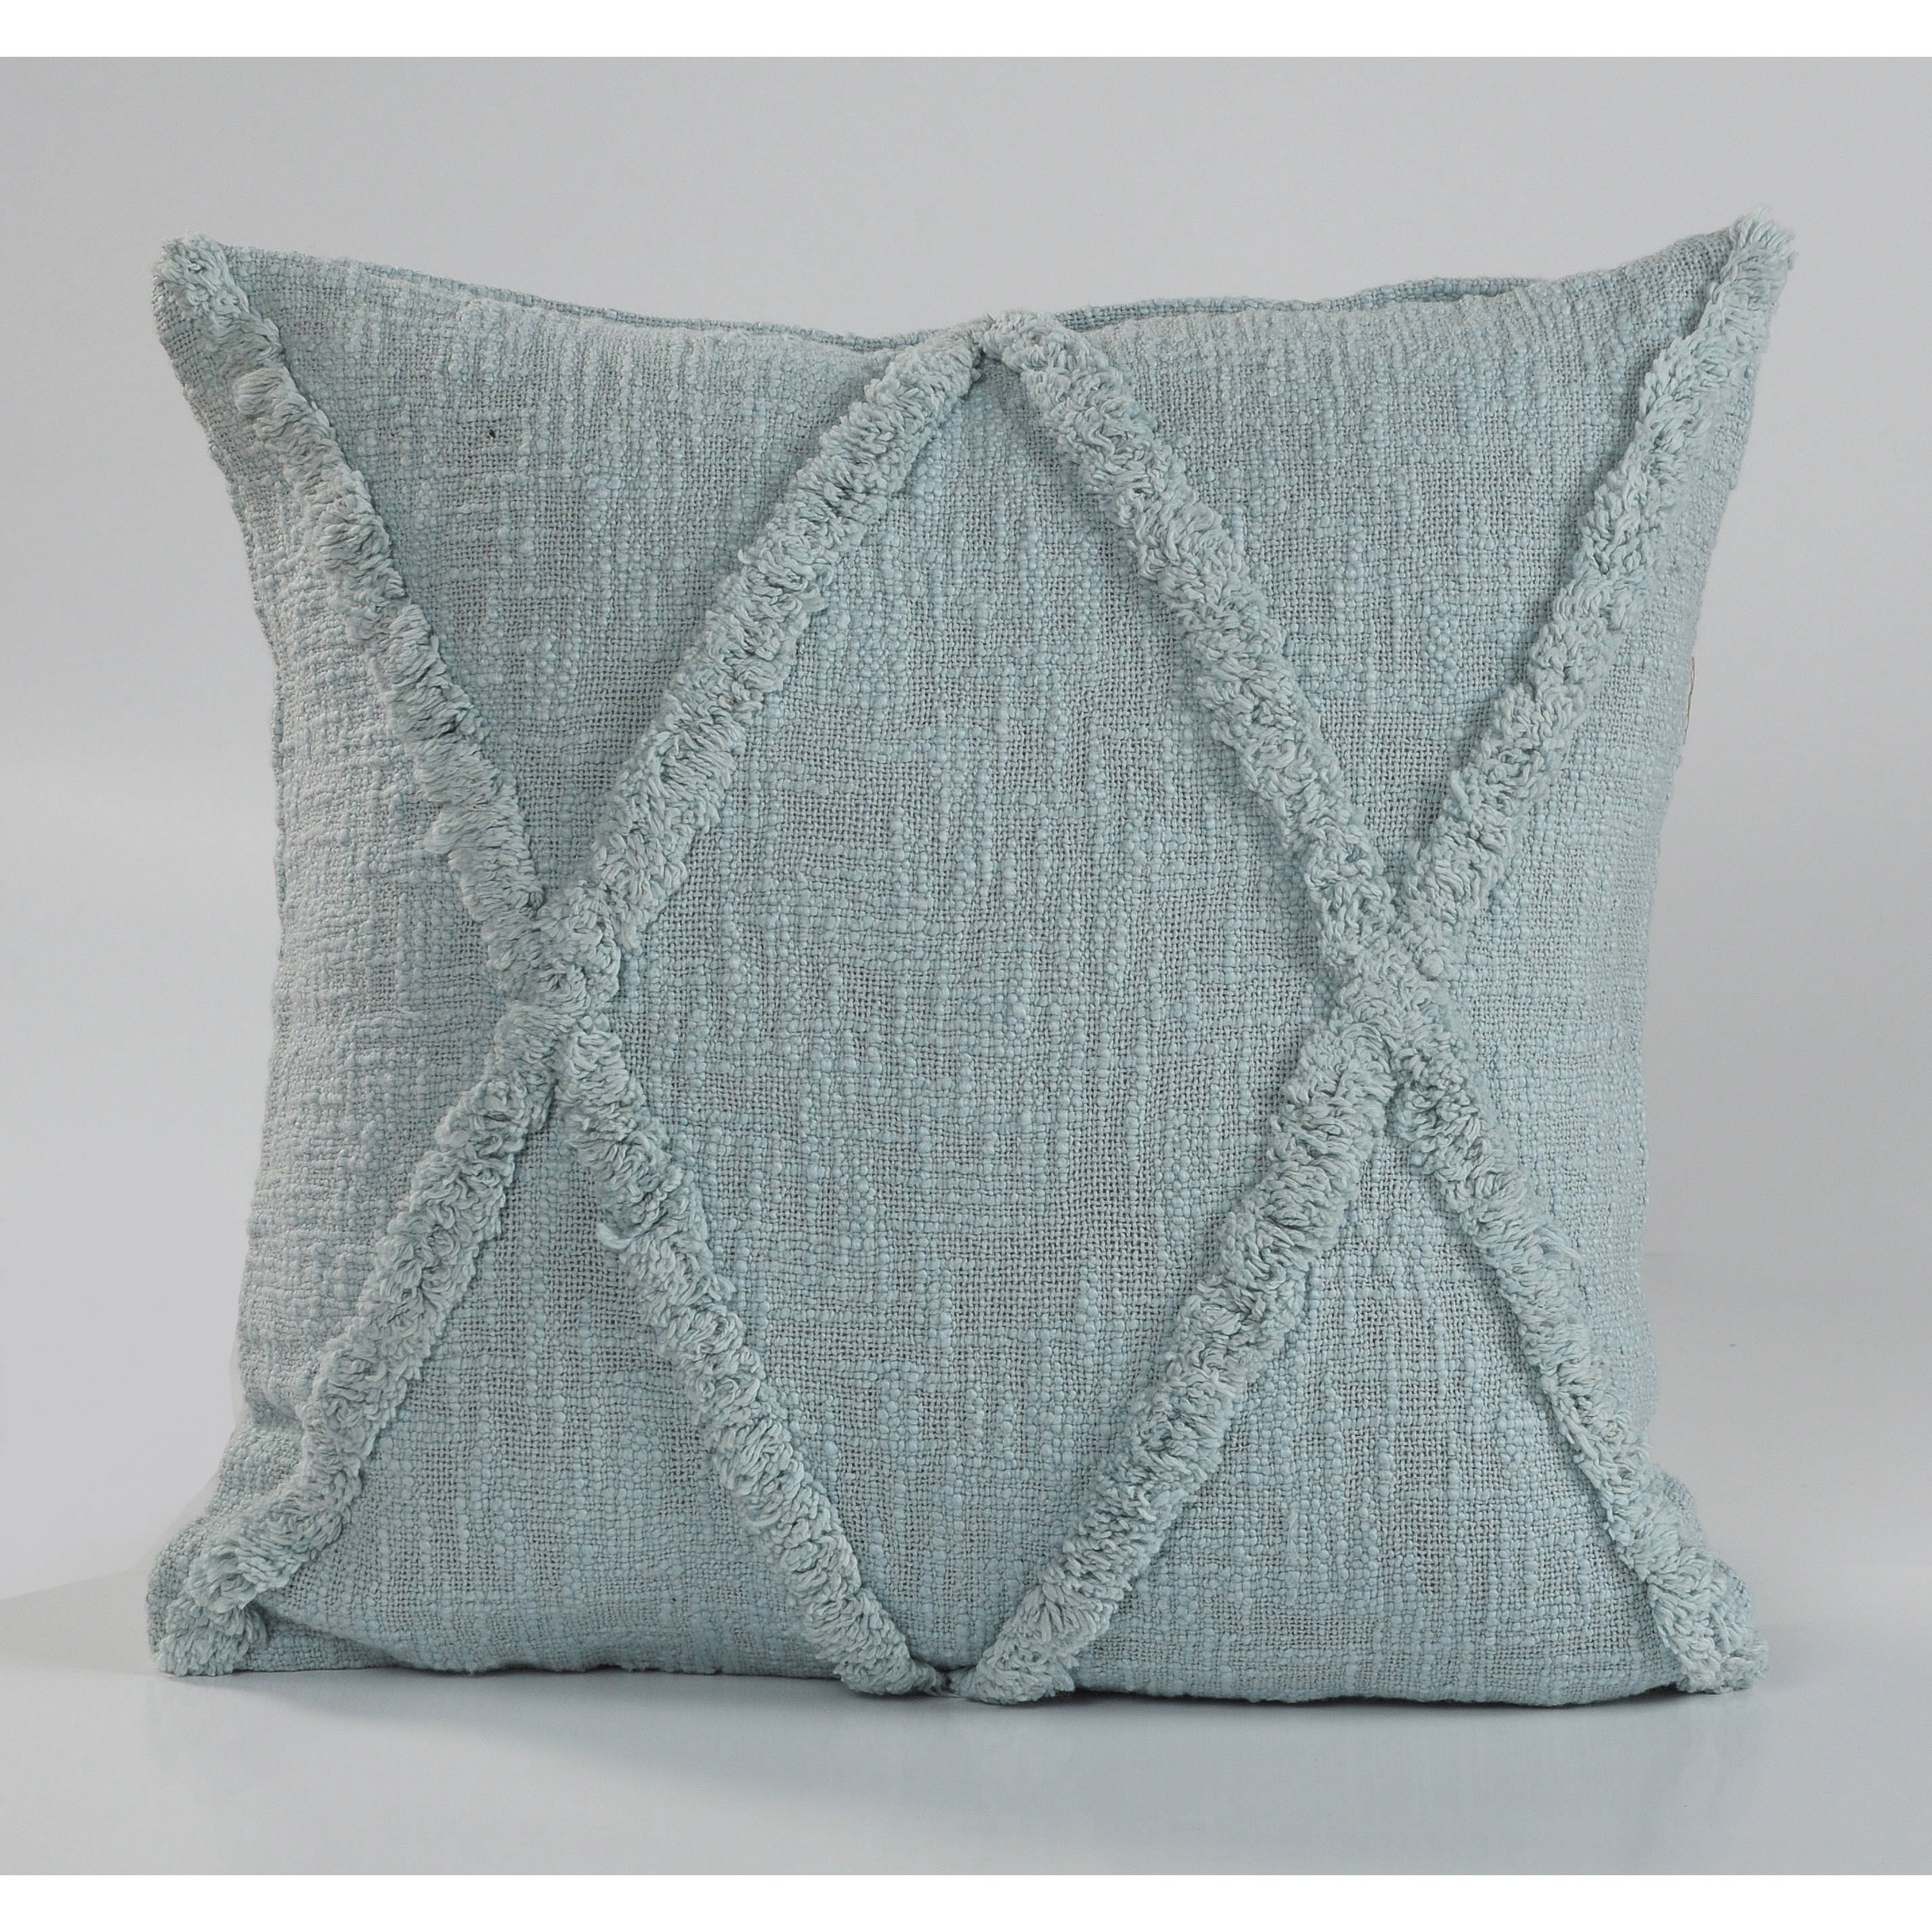 Blue Throw Pillows Cheaper Than Retail Price Buy Clothing Accessories And Lifestyle Products For Women Men